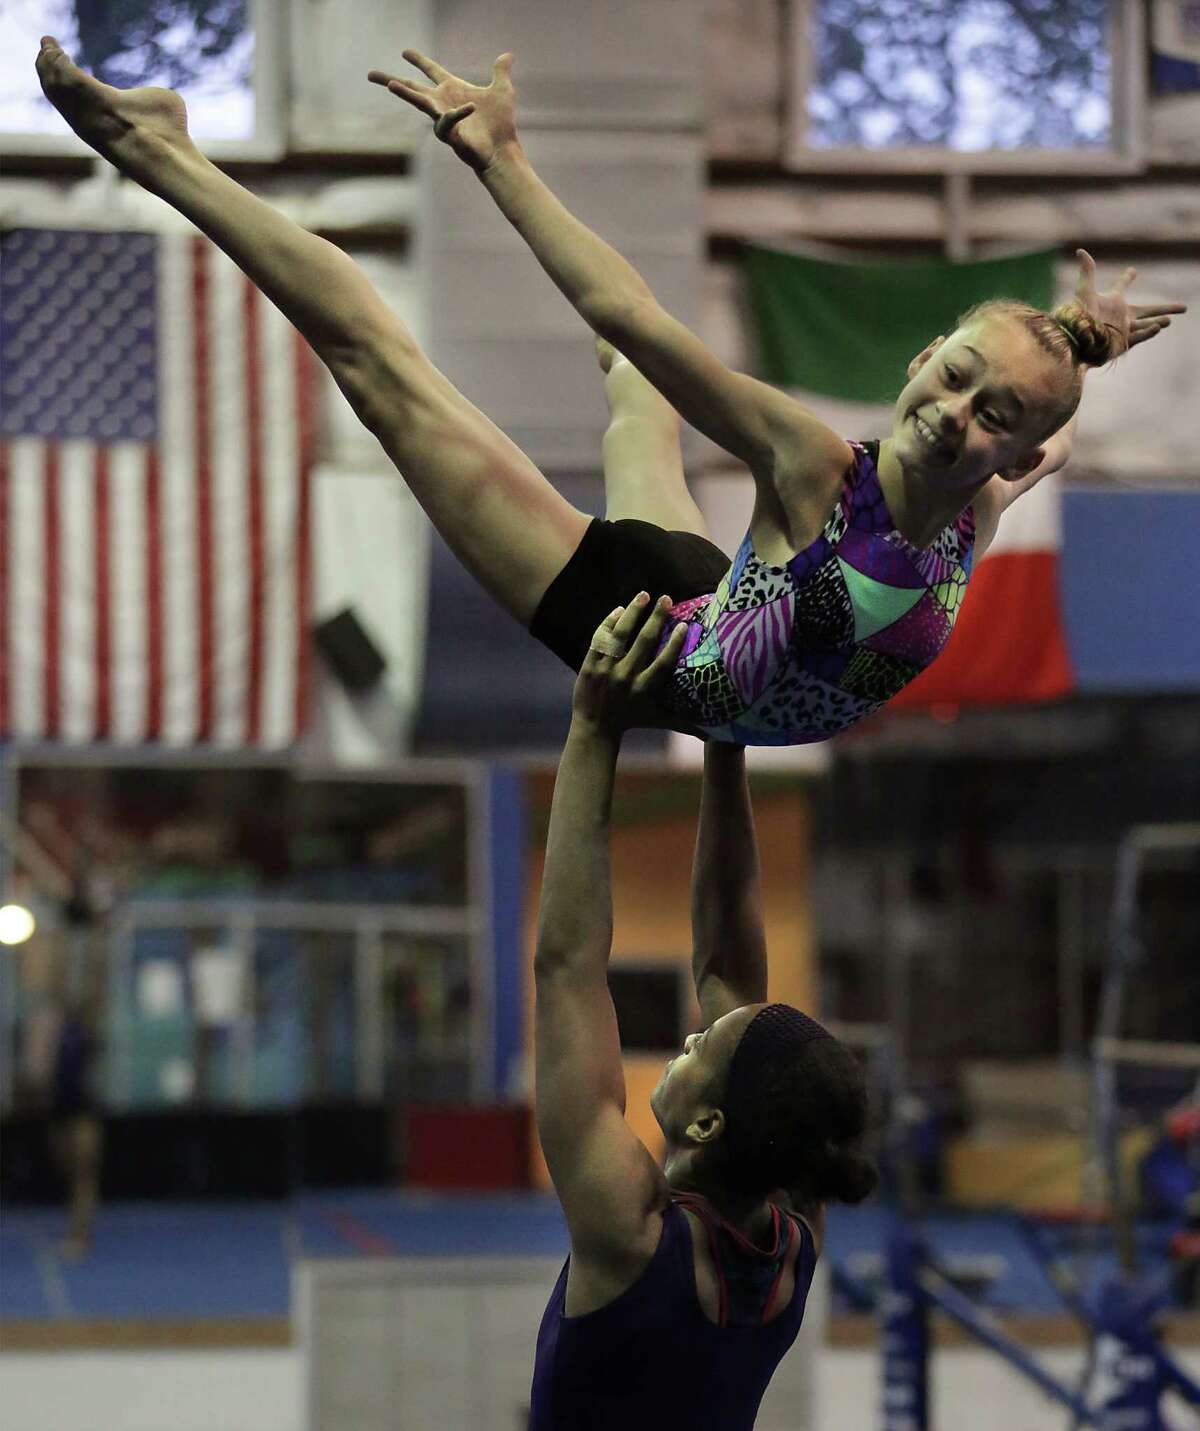 Jessica Renteria lifts Maren Merwarth as they practice their routine at Acrobatic Gymnastics of San Antonio. A team of young gymnasts will travel to Paris, France to compete in the Acrobatic Gymnastics World Championships. Friday, June 20, 2014.